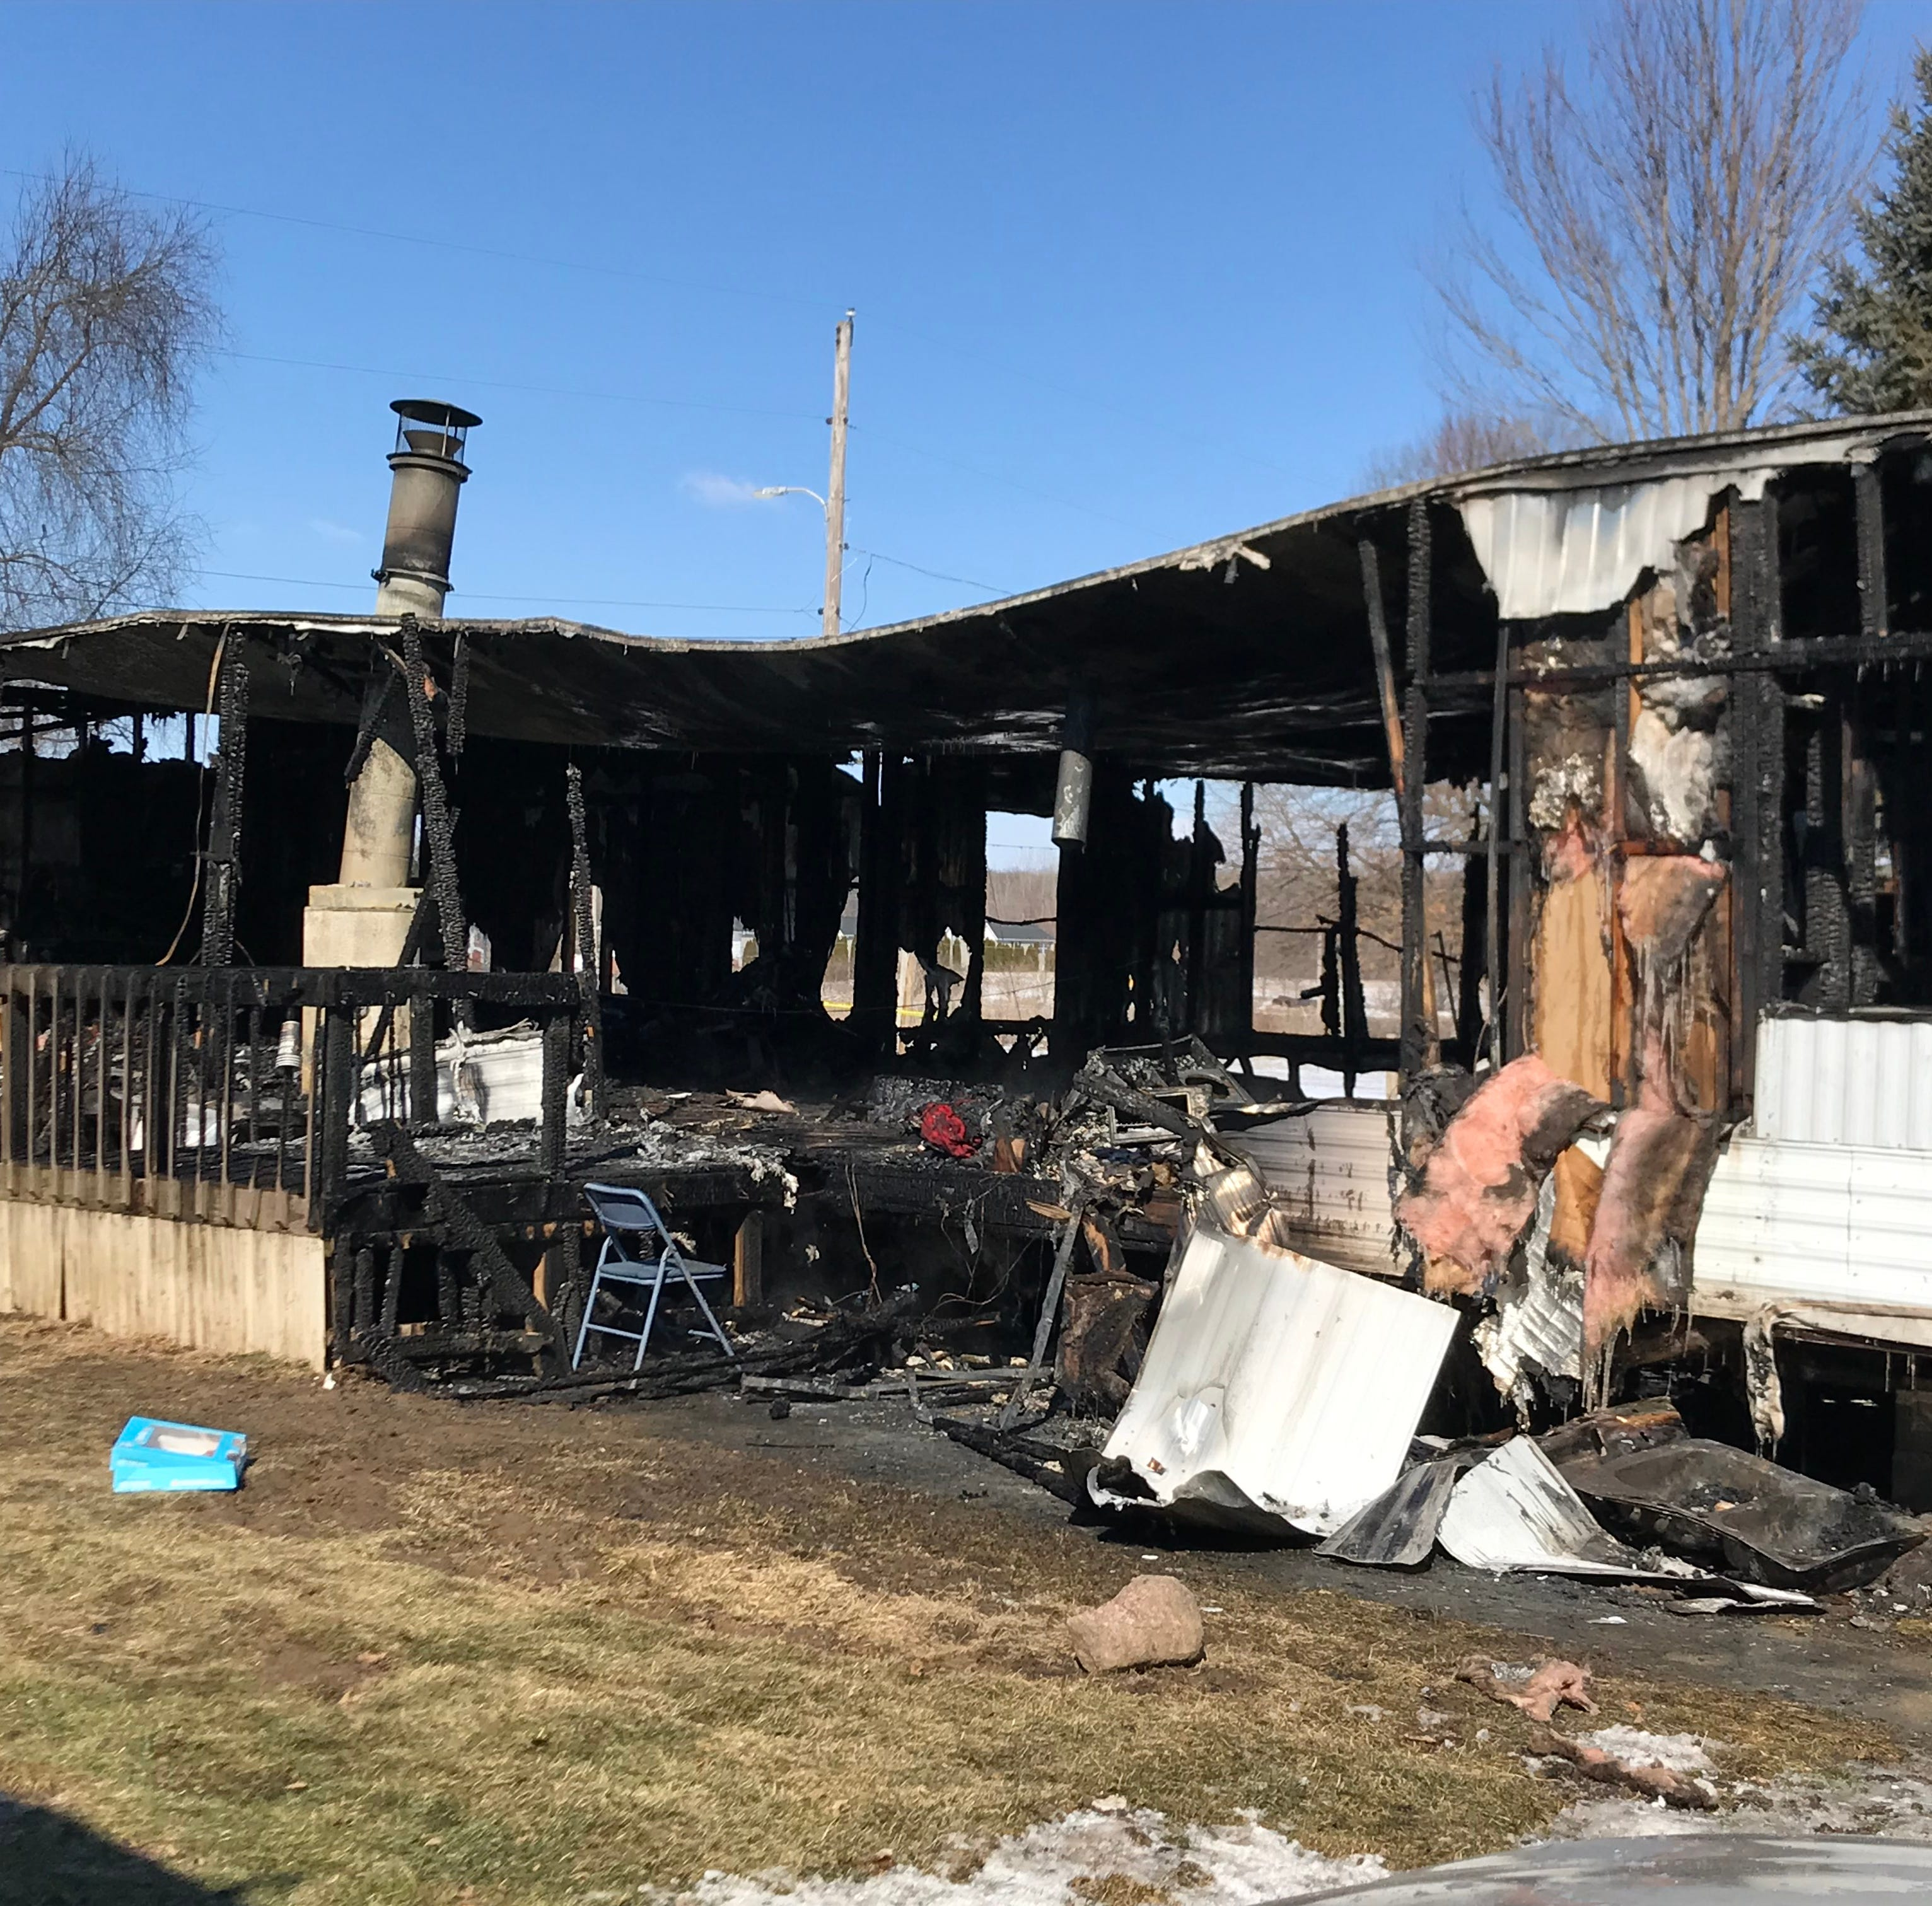 19-year-old woman believed dead in home fire